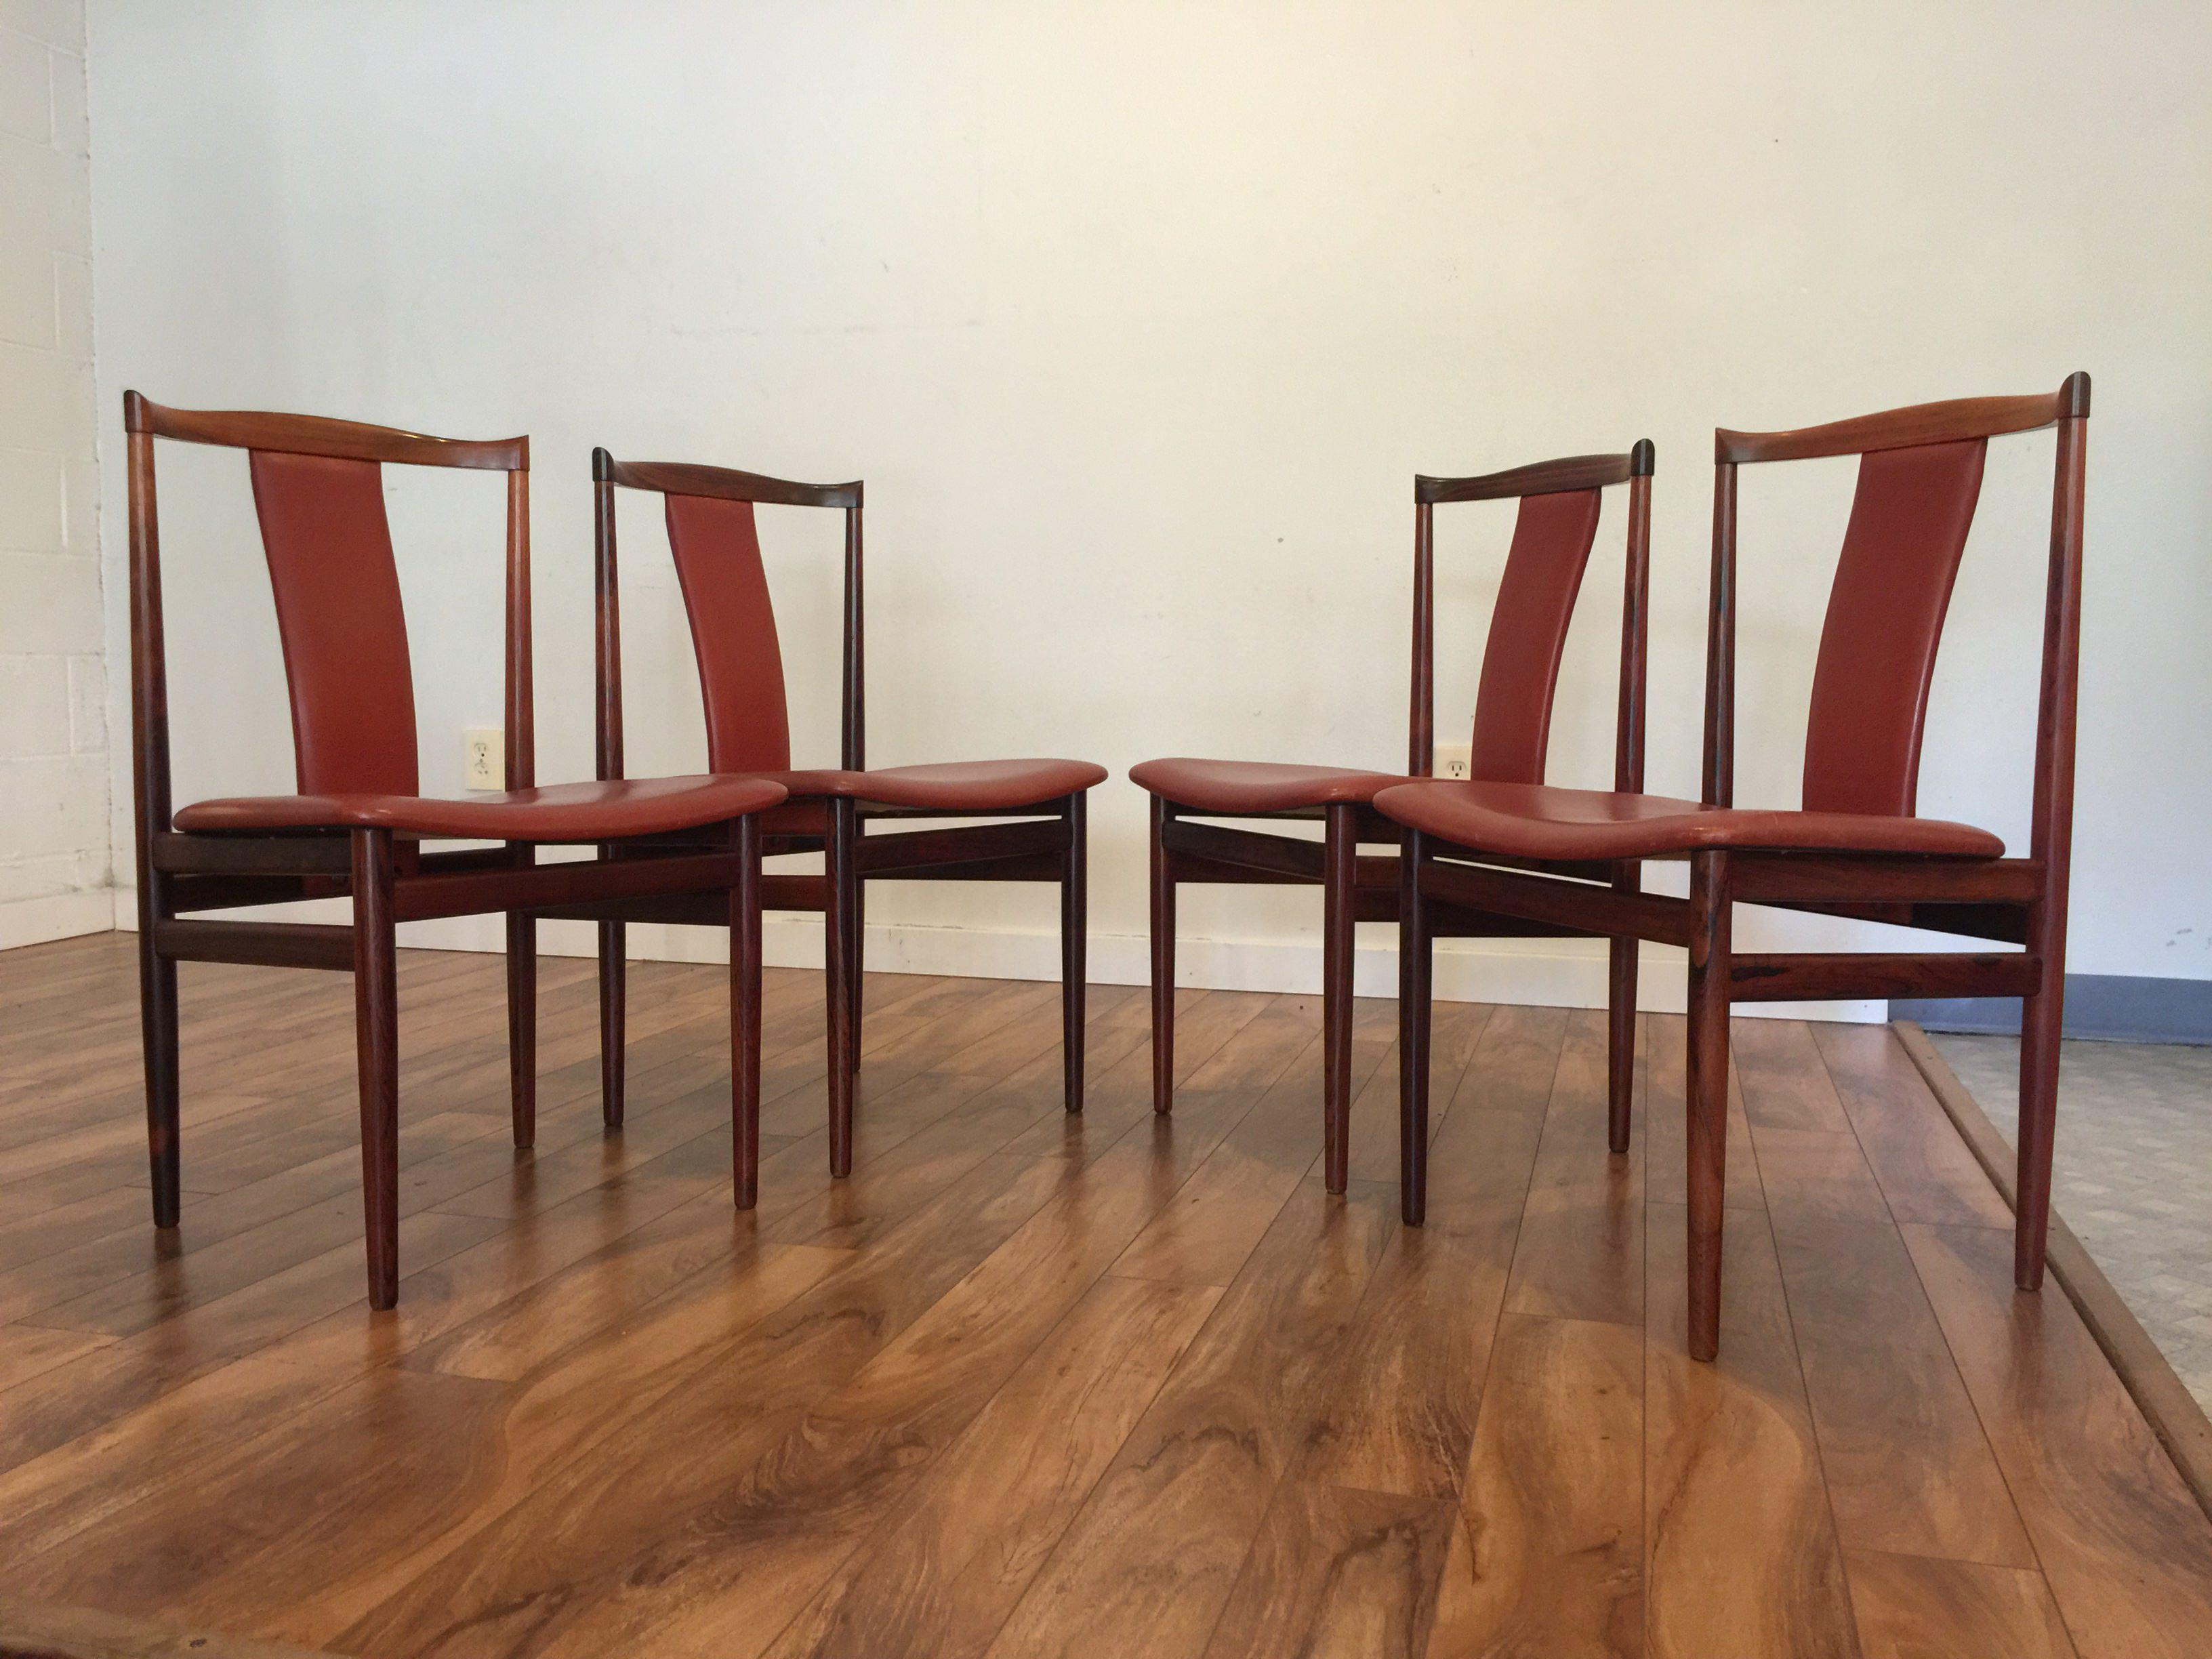 henning sorensen rosewood u0026 leather dining chairs set of 4 image 5 of 11